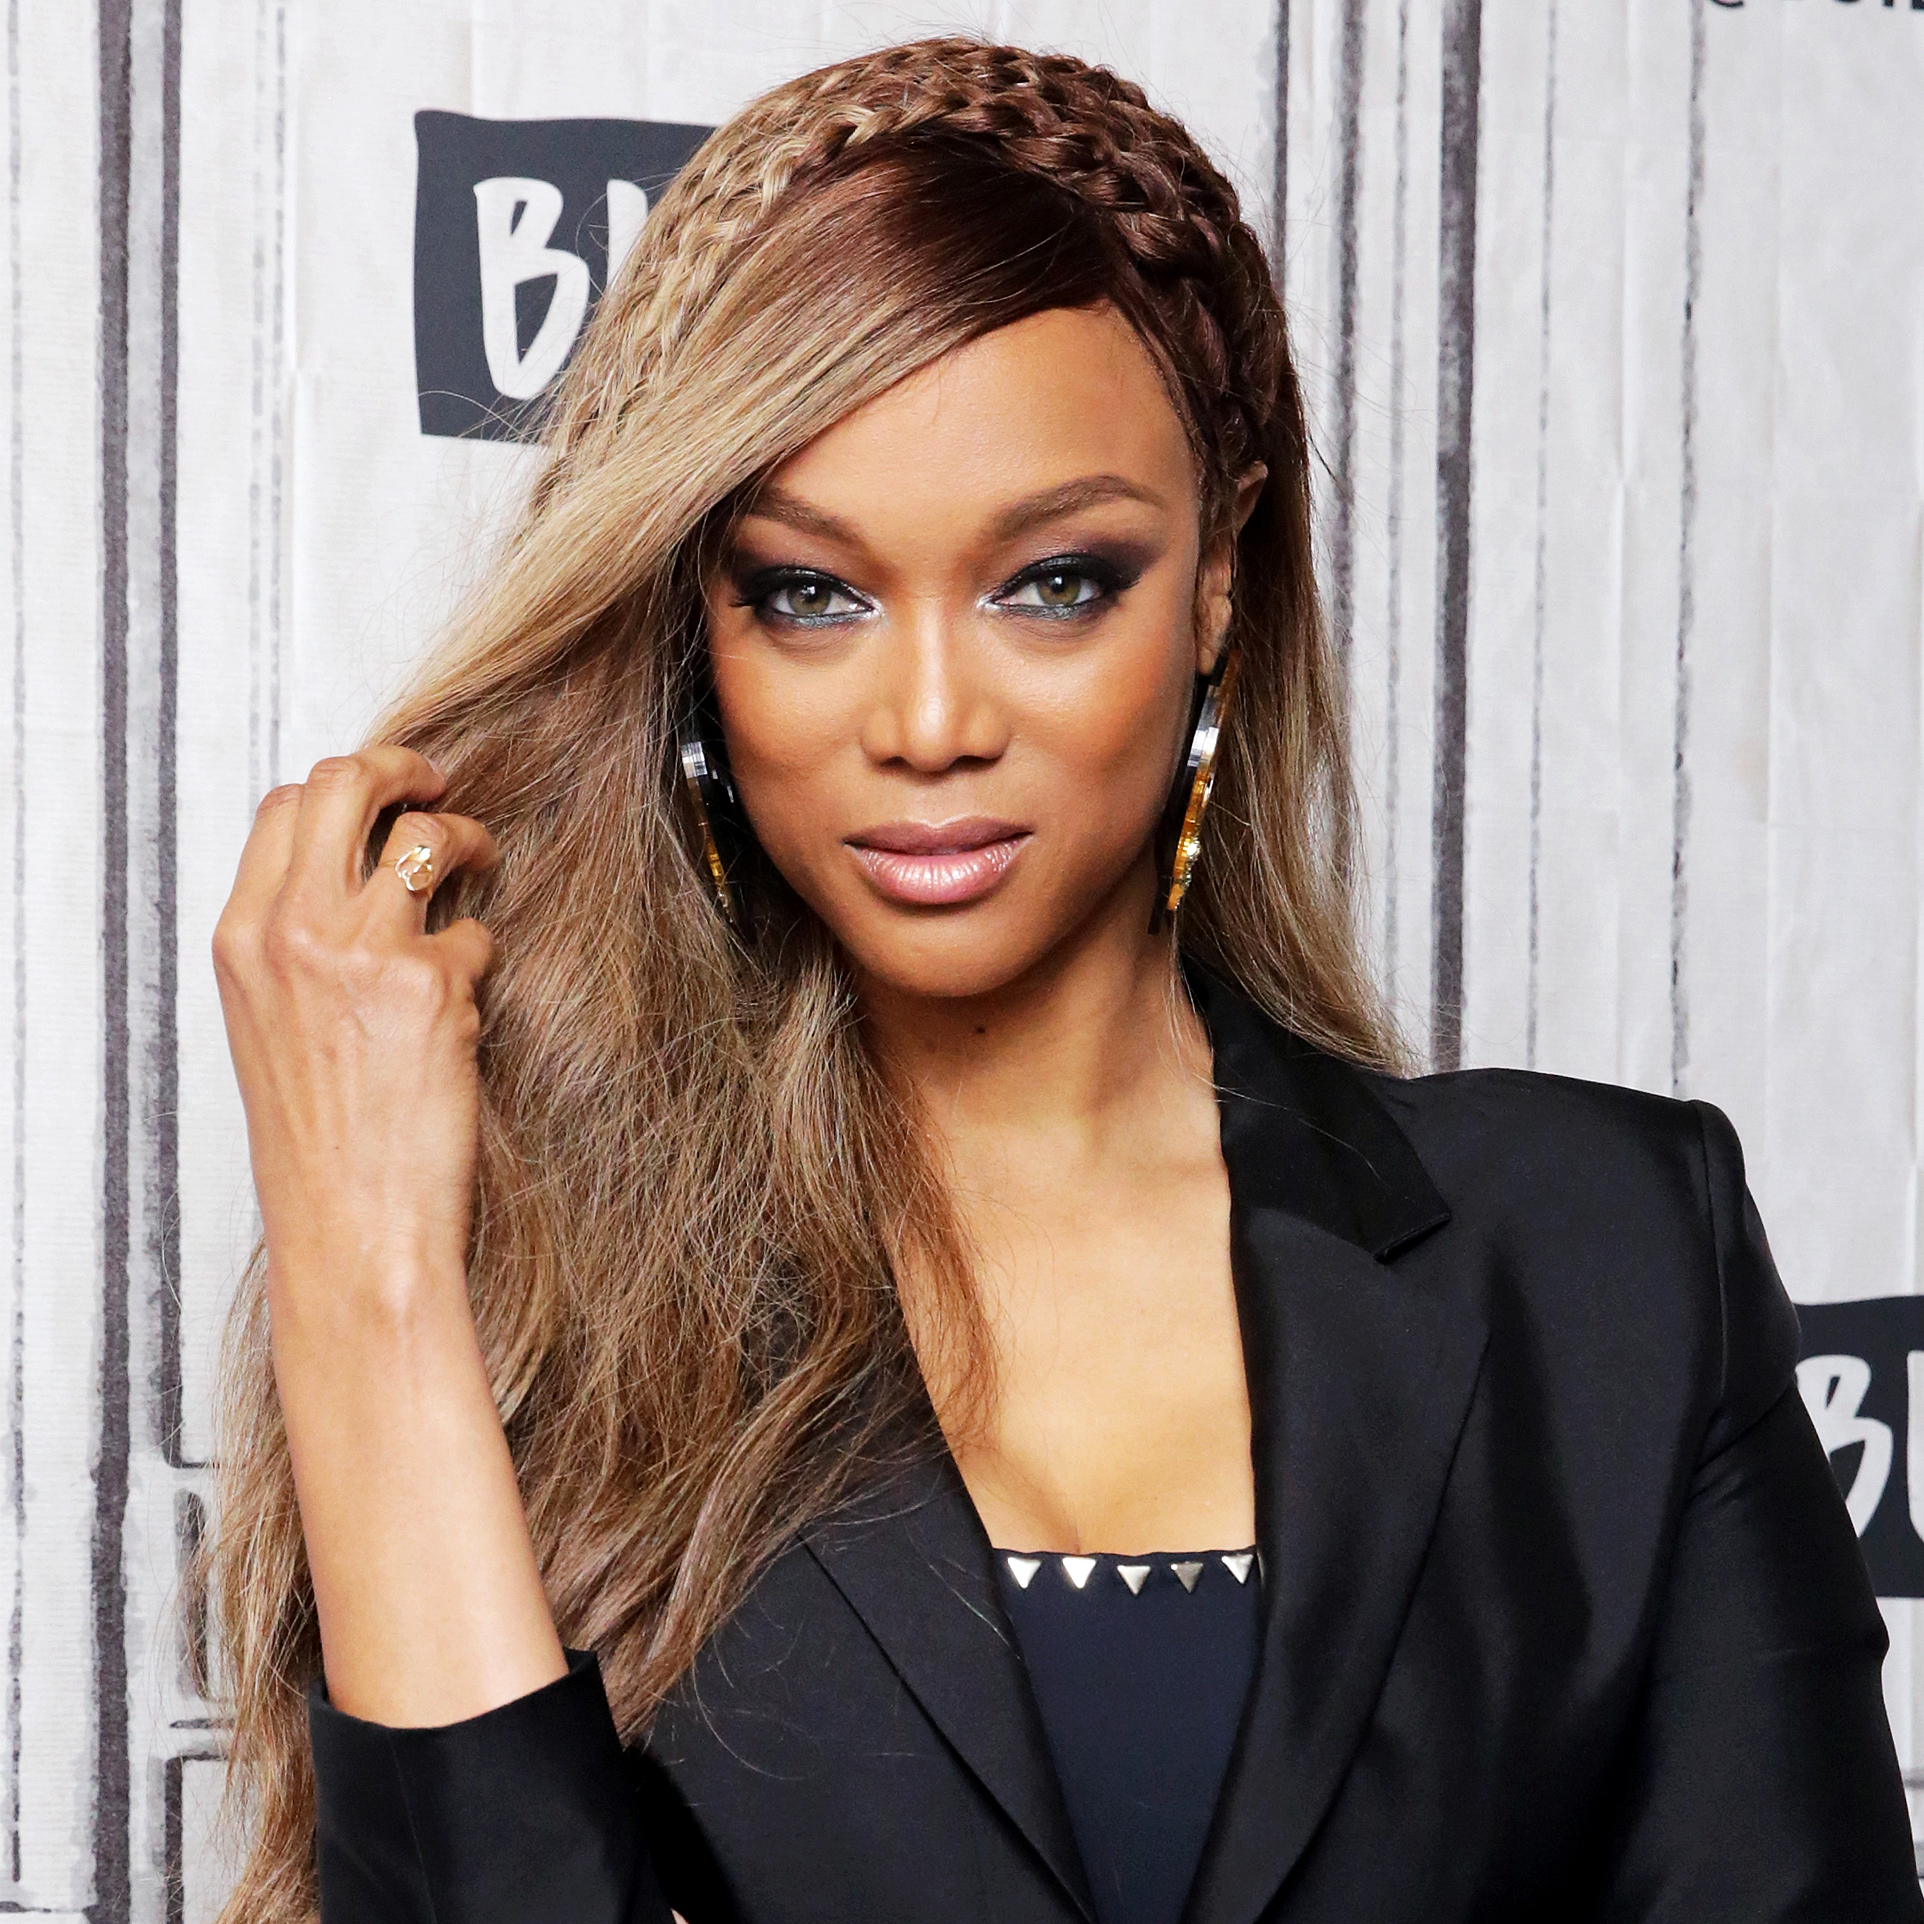 """tyra-banks - The supermodel dated a man who emotionally abused her and tried to break her down so he could be in control. She said that one day, she woke up and decided to end the relationship because """"when you're done, you know you're done,"""" as she revealed on her talk show in 2009."""